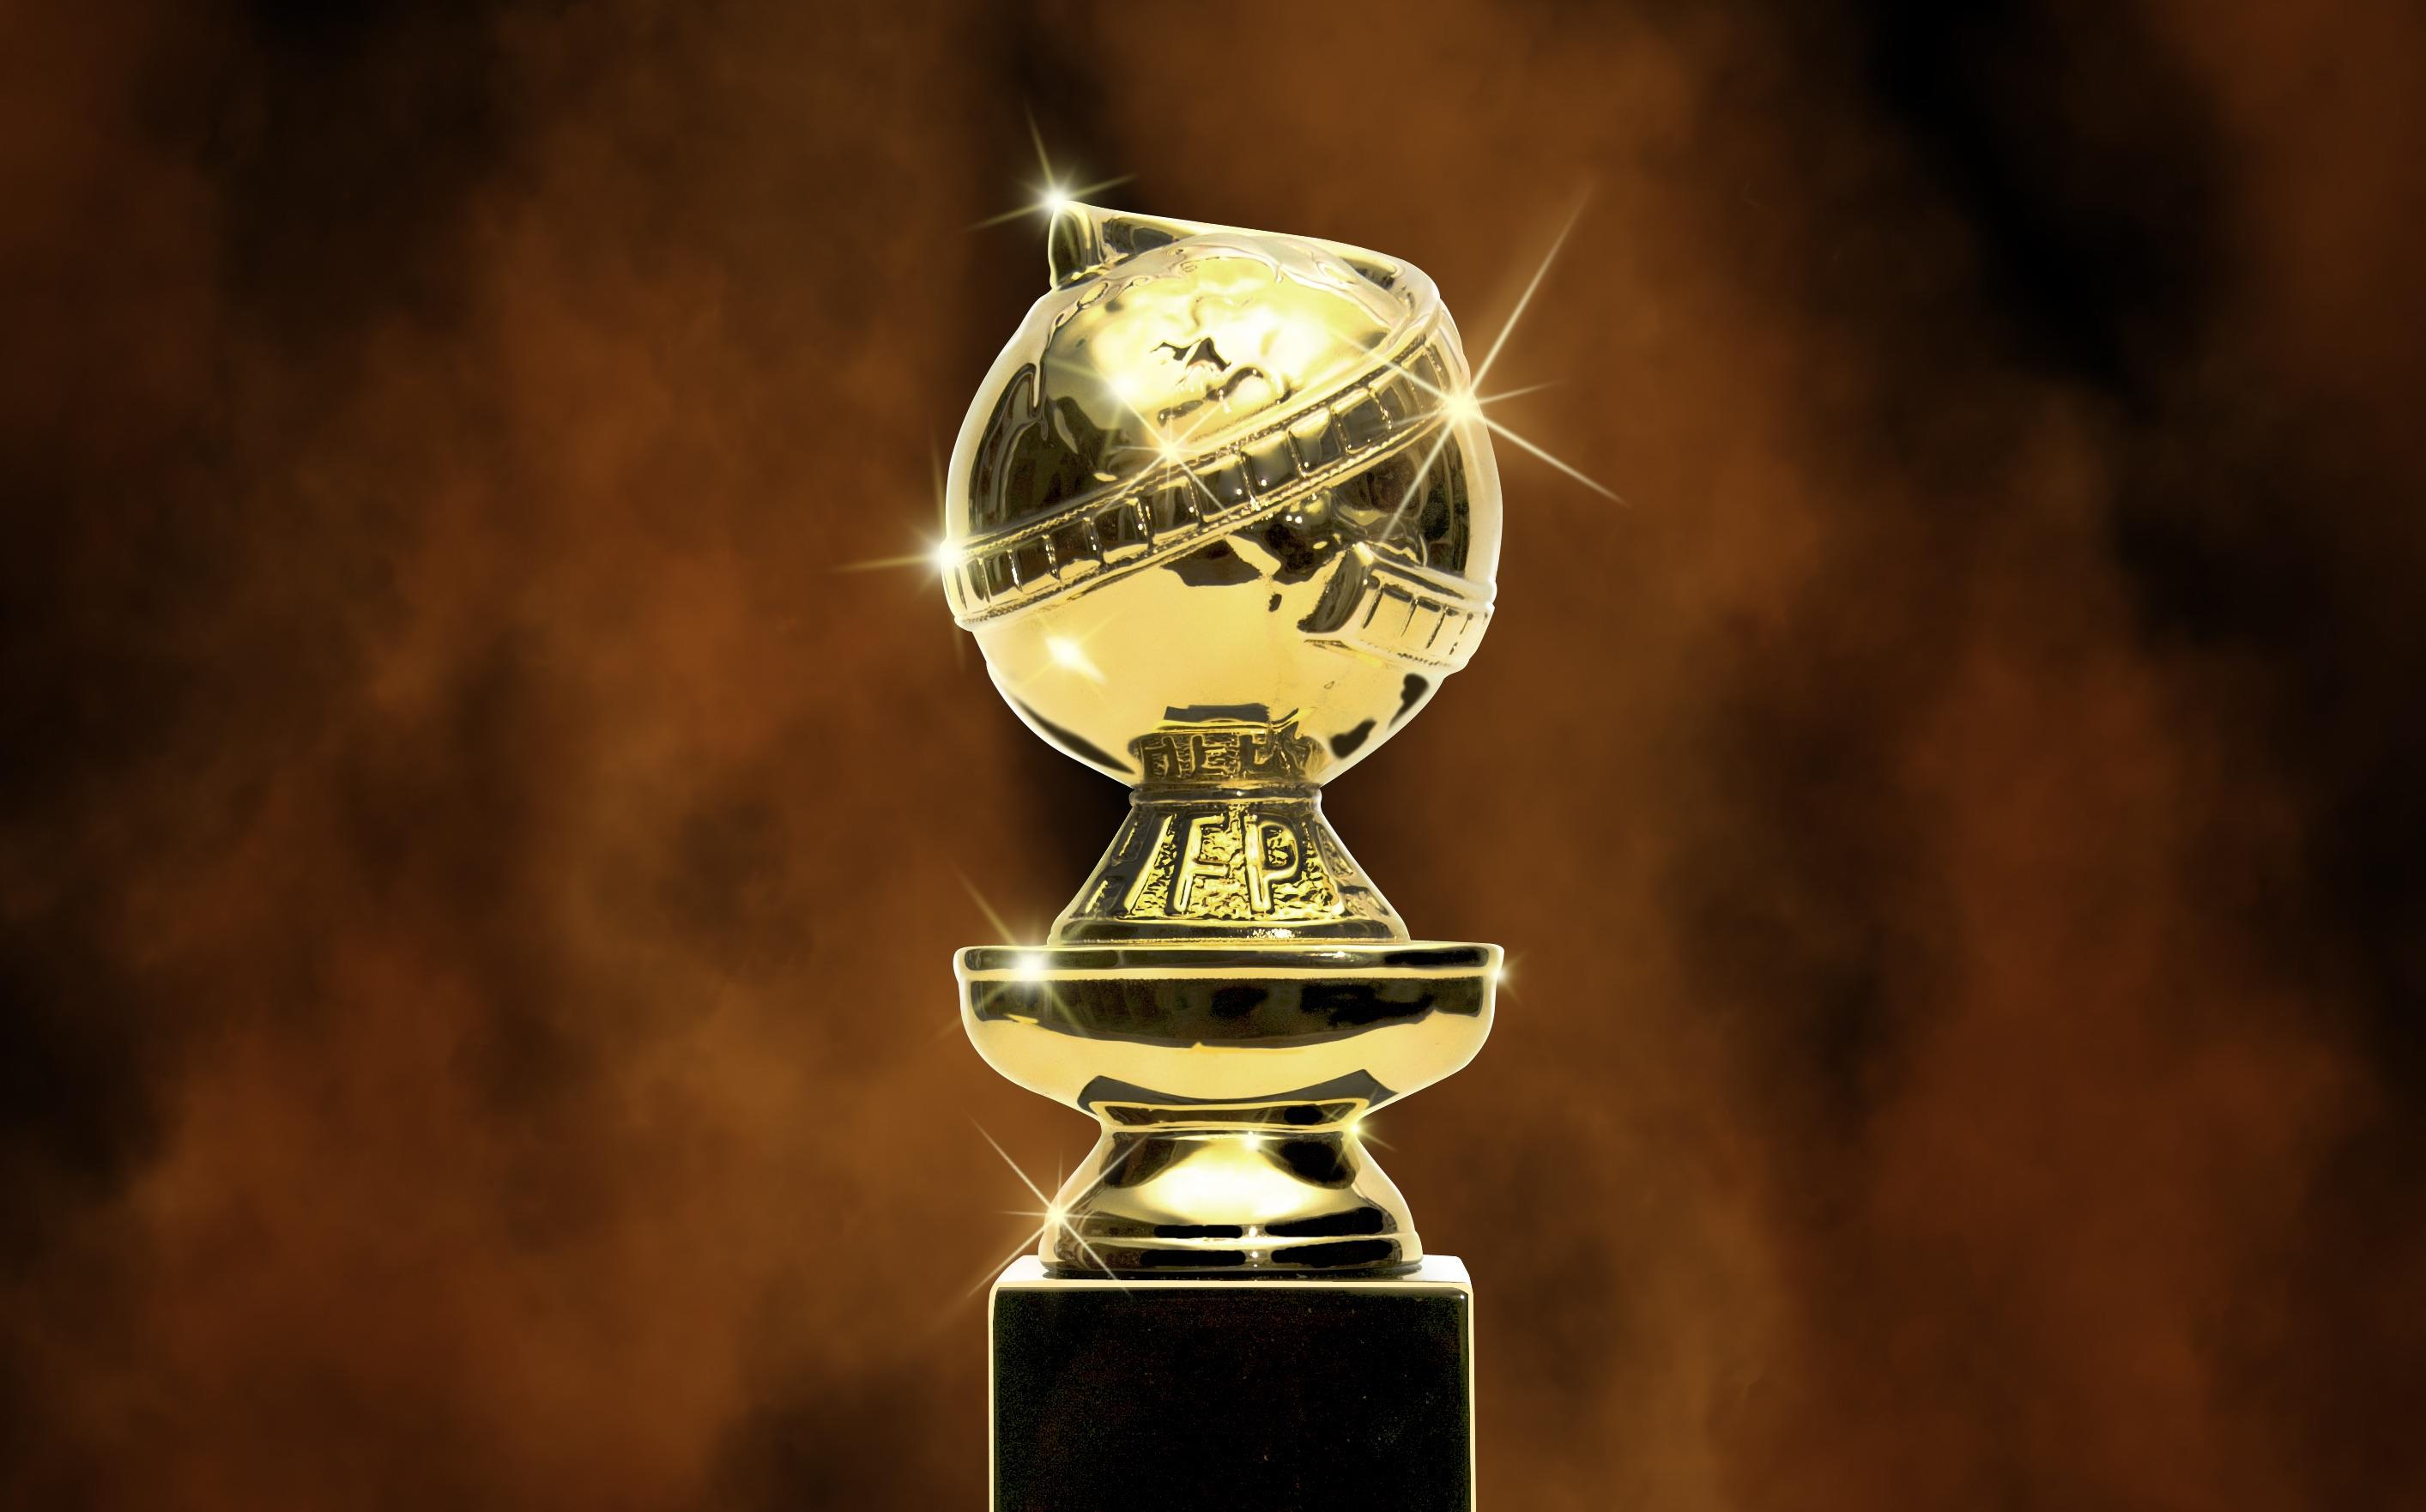 <p>NBC won't air Golden Globes in 2022 in protest of HFPA thumbnail